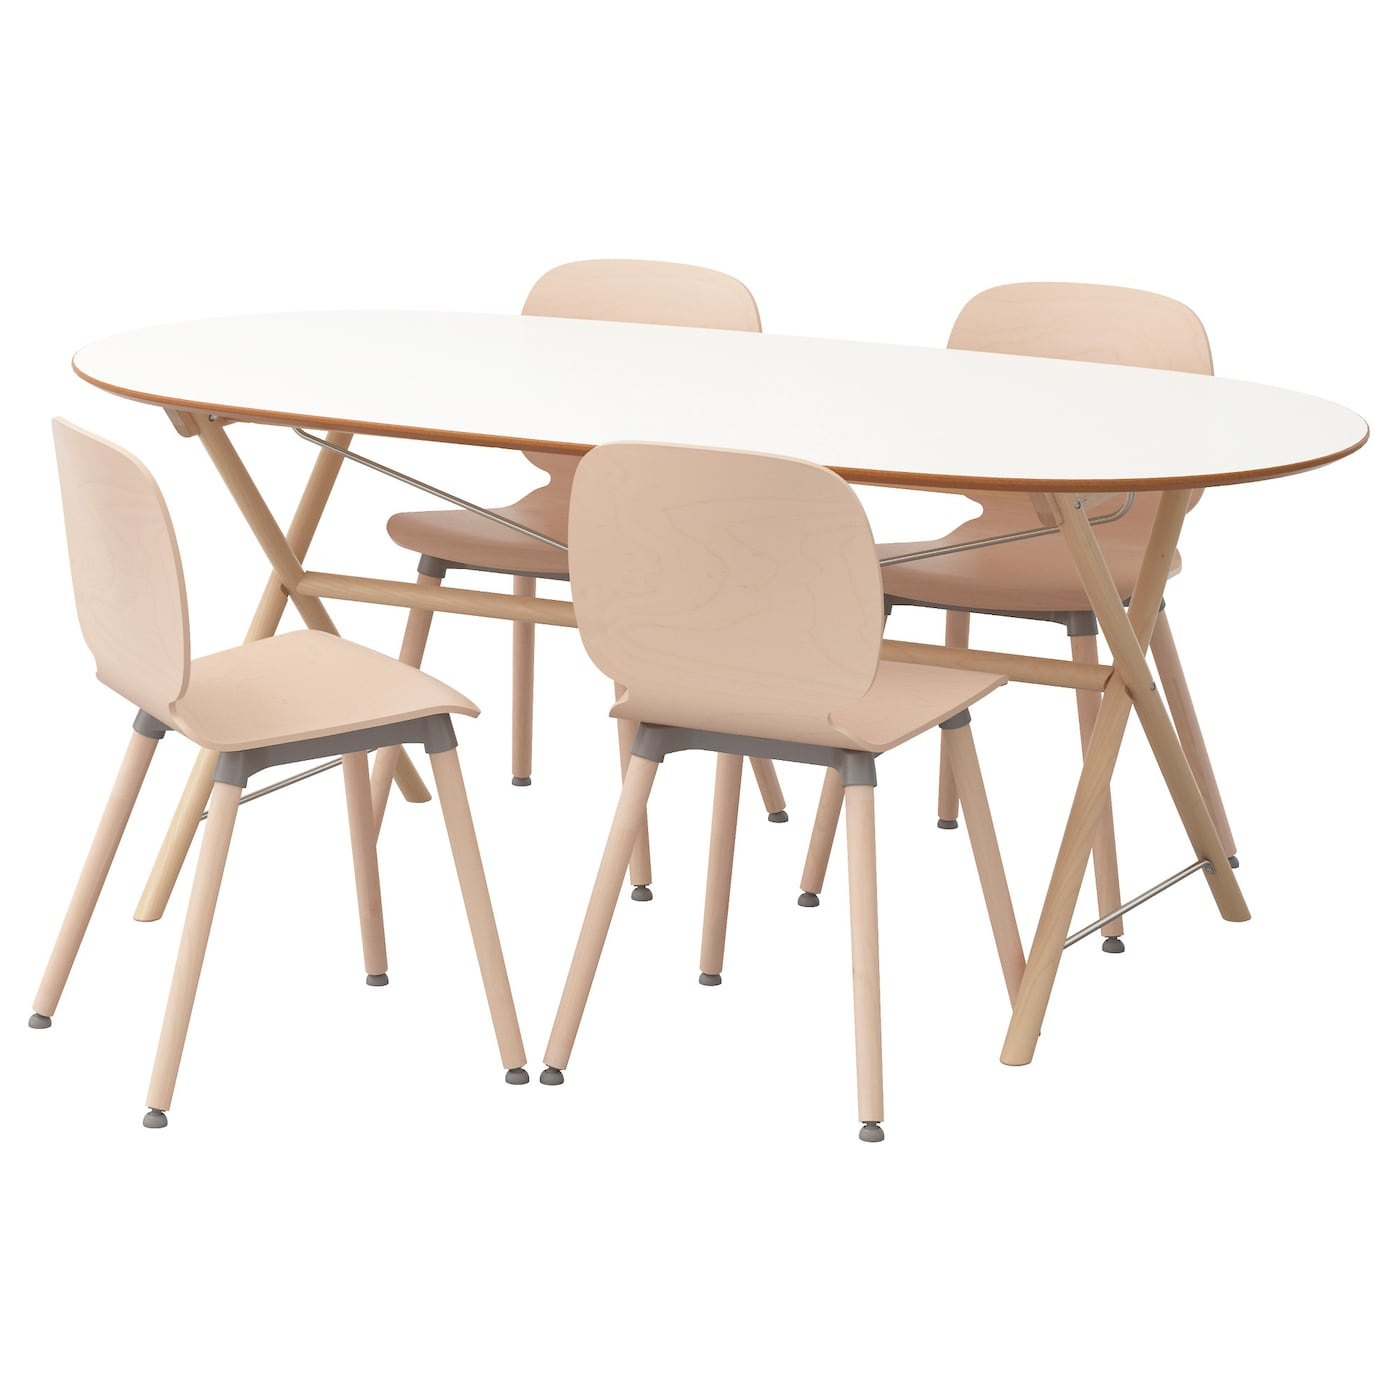 """SL""""HULT DALSHULT SVENBERTIL Table and 4 chairs Birch white birch"""